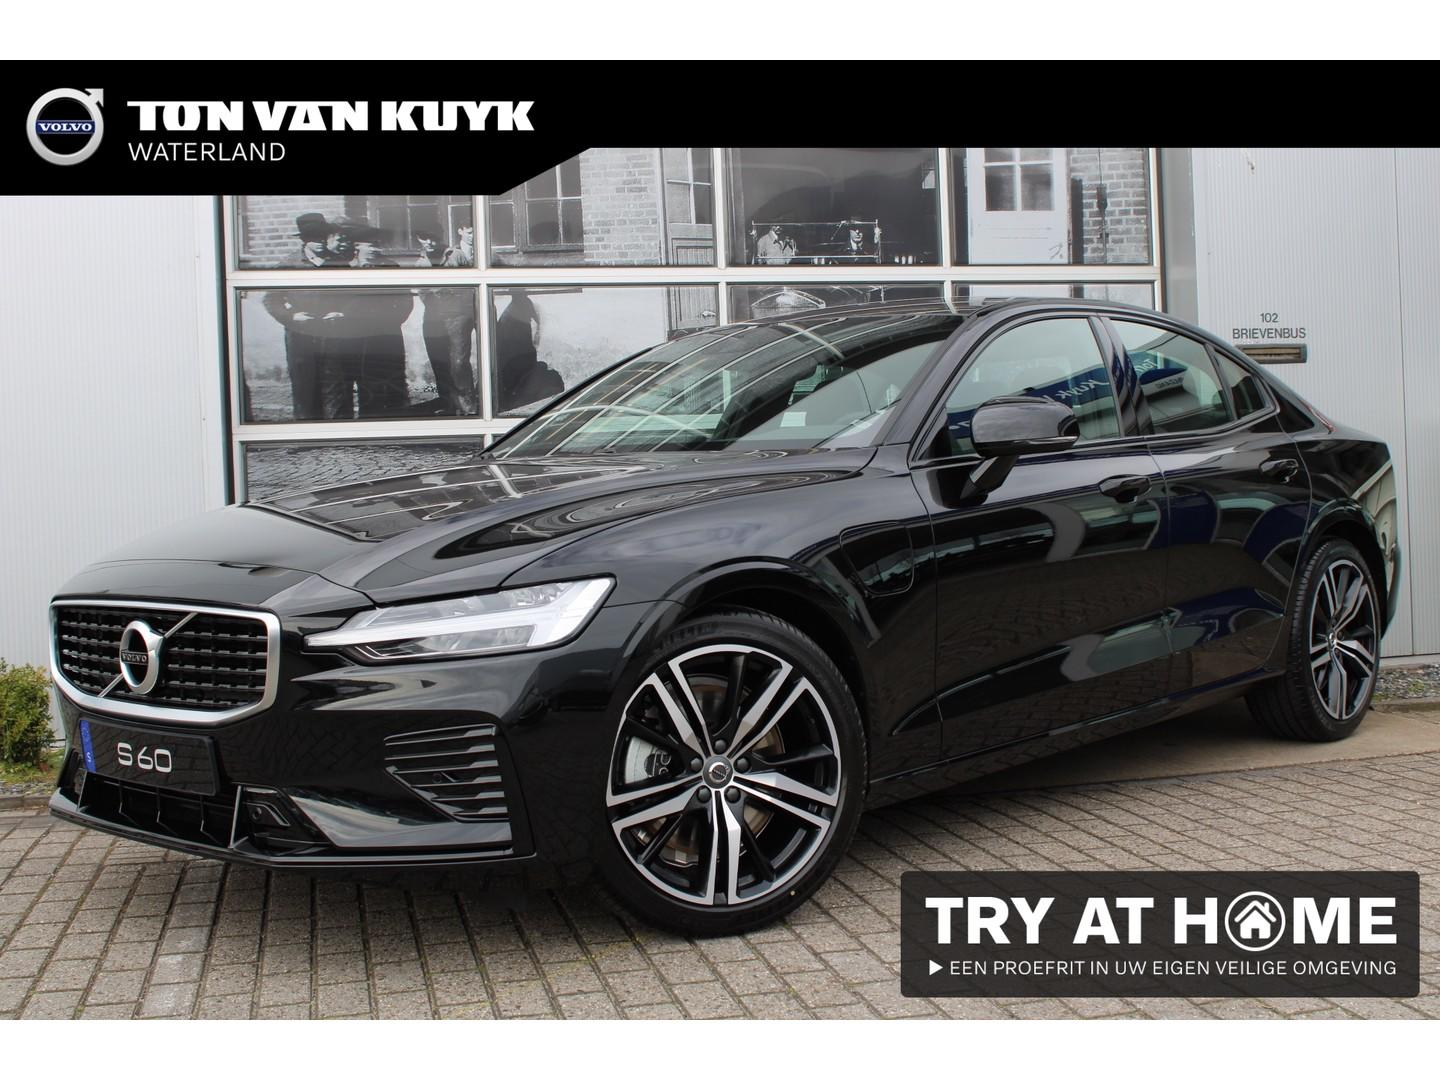 Volvo S60 T6 te 340pk awd automaat r-design / intellisafe / park assist line /